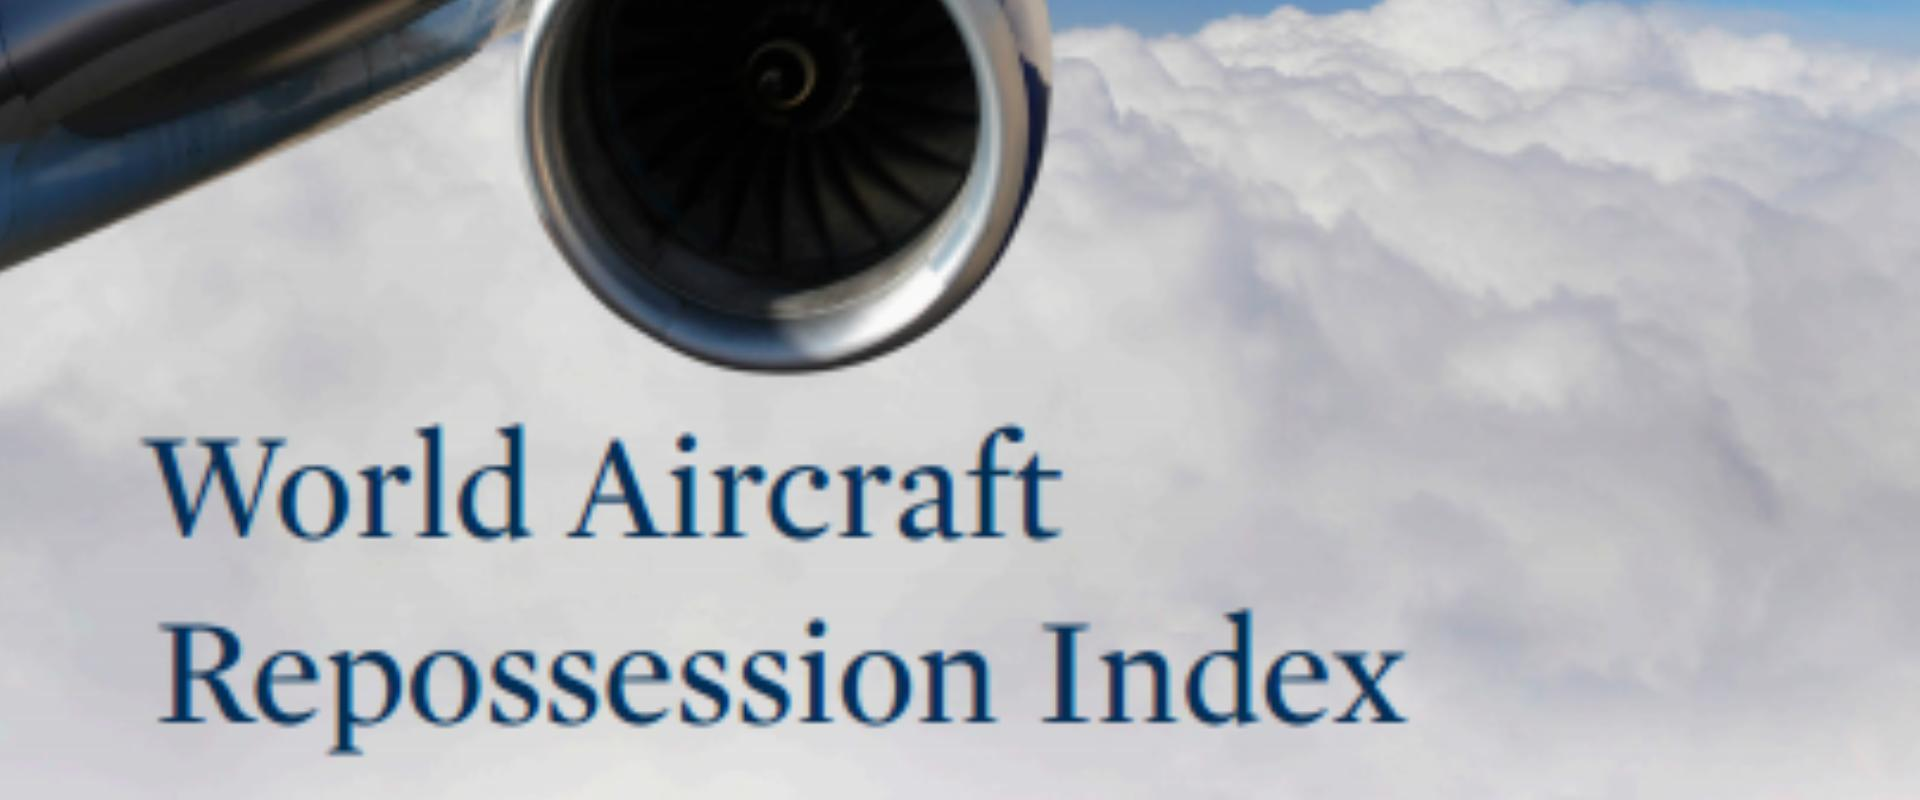 Al Jallaf contributes to World Aircraft Repossession Index, published today